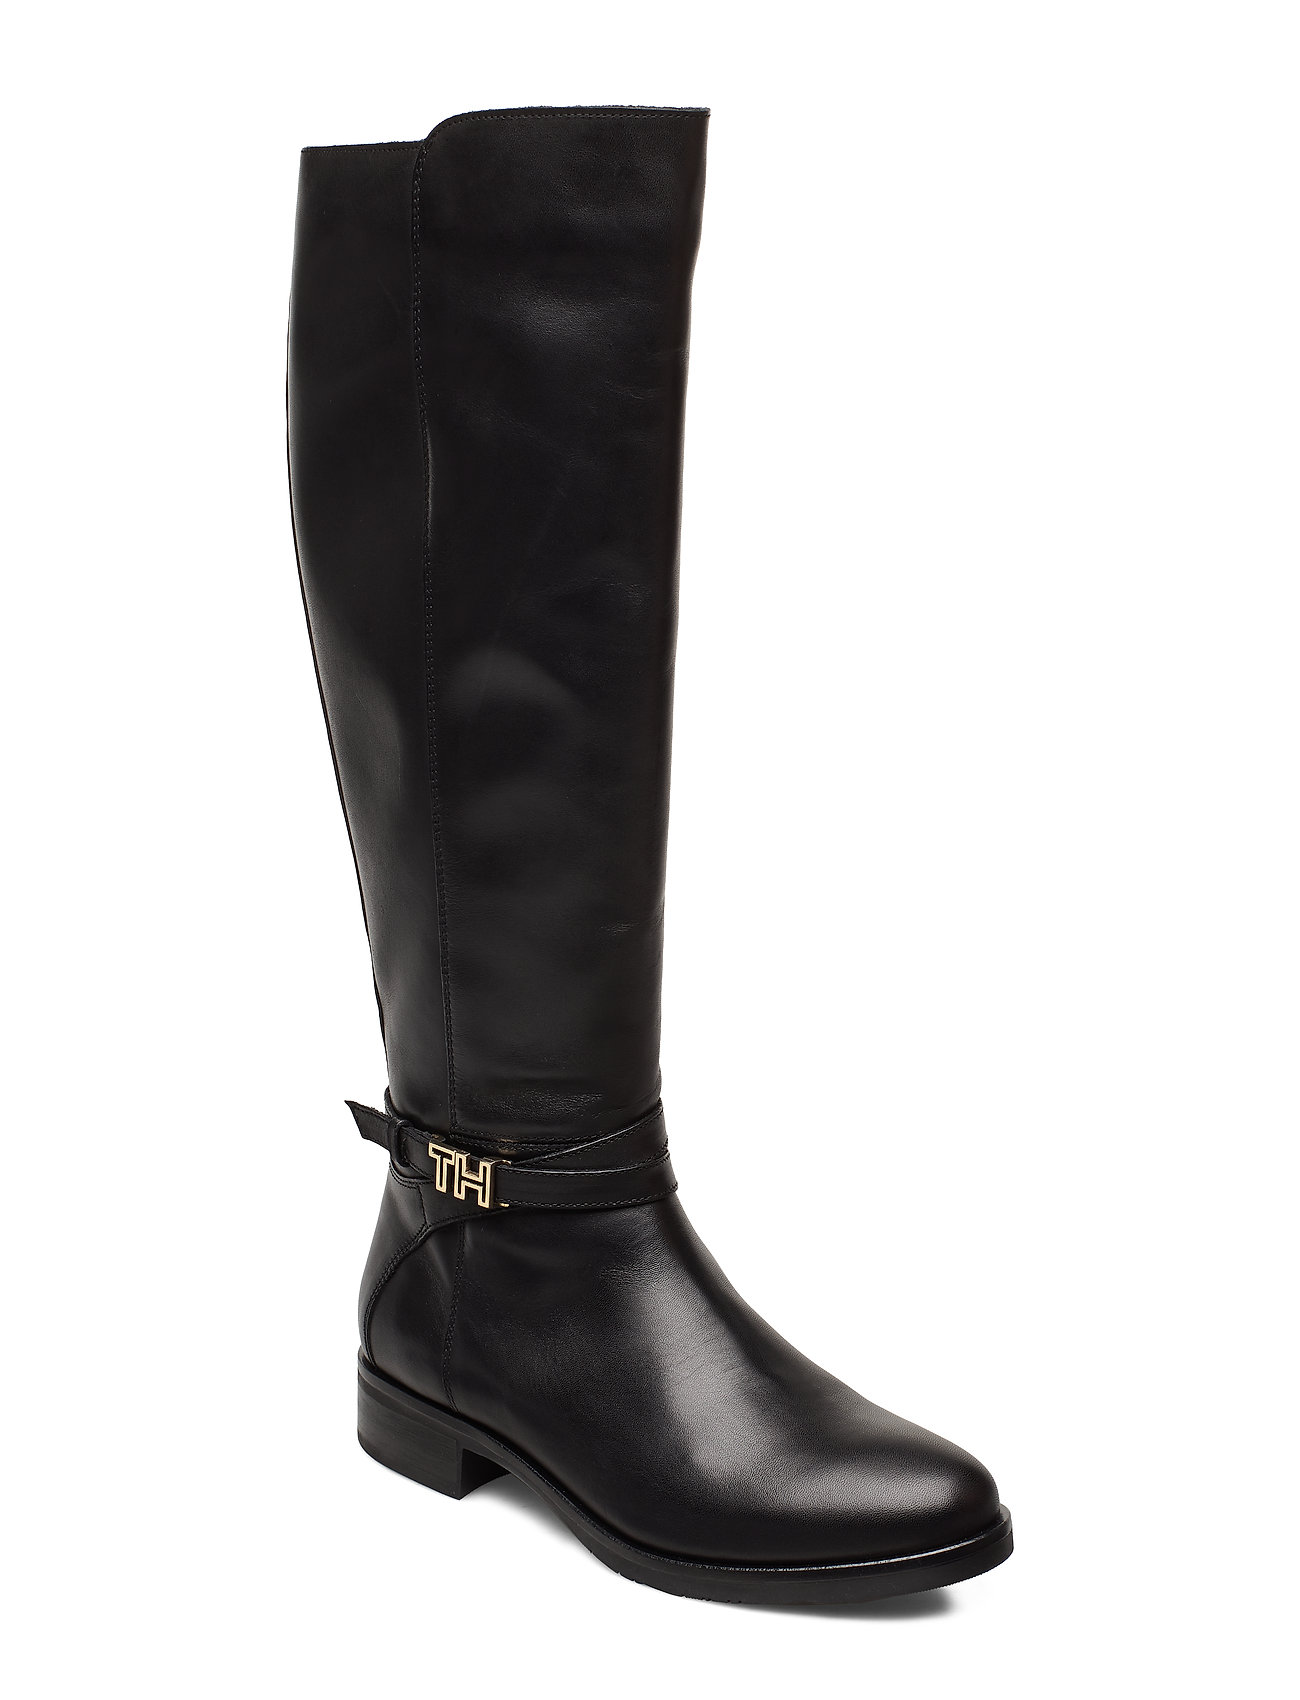 Tommy Hilfiger TH HARDWARE LEATHER LONGBOOT - BLACK